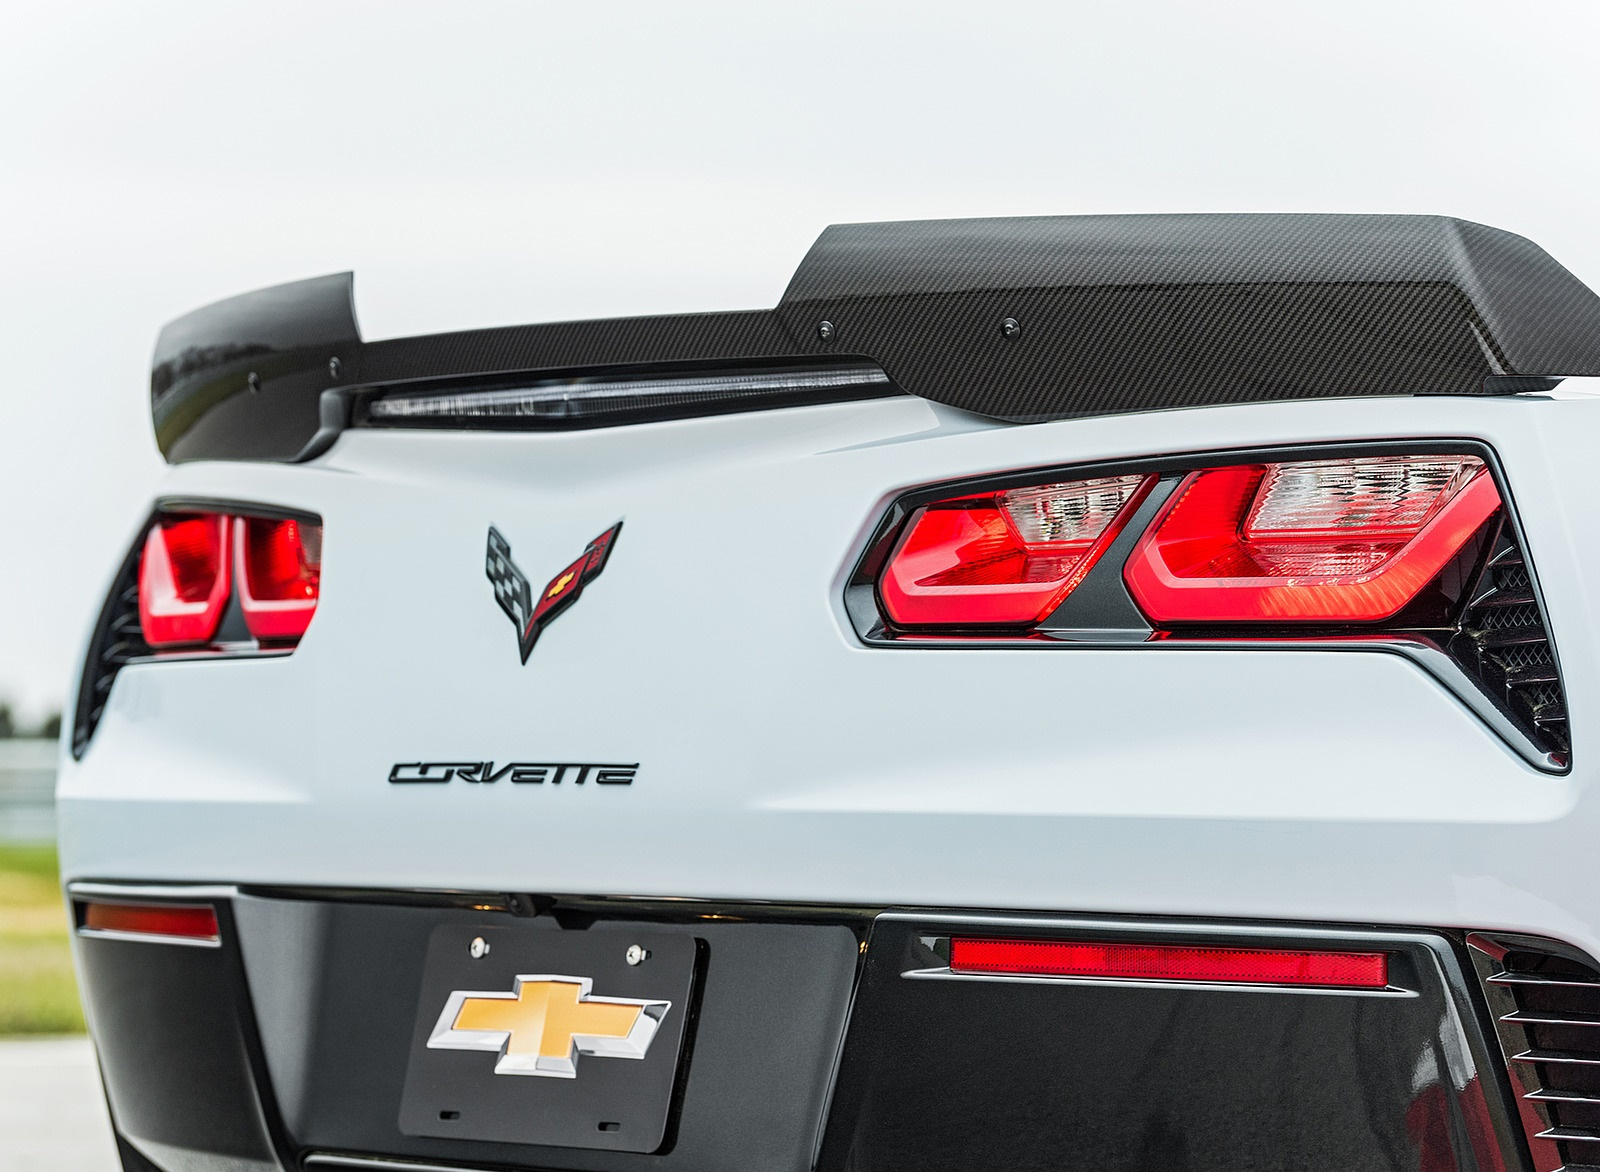 2018 Chevrolet Corvette Carbon 65 Edition Tail Light Wallpapers (6)